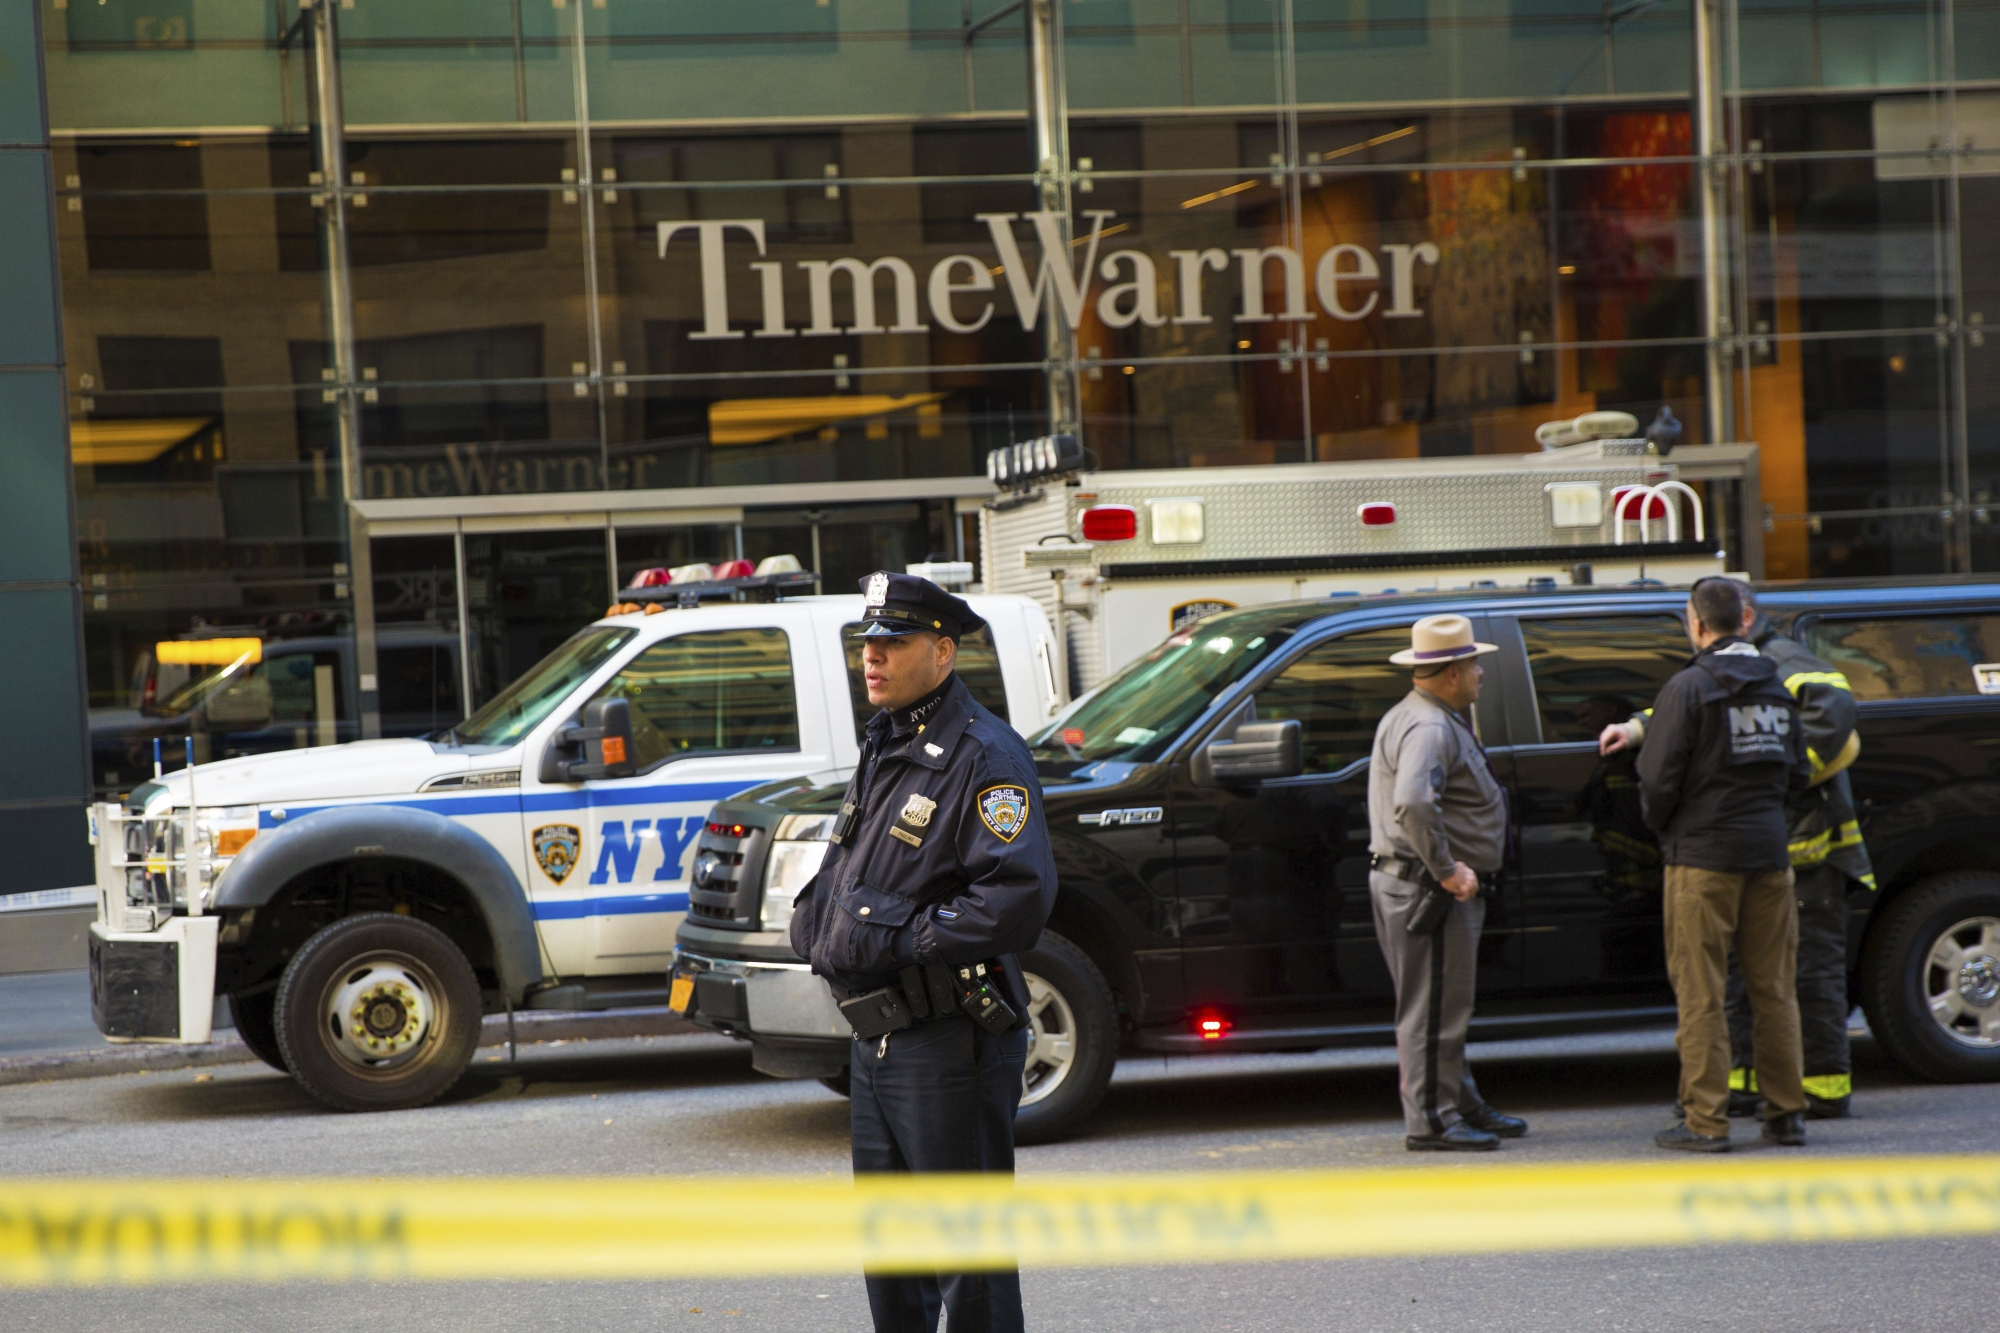 Time Warner Centre, home of CNN, where a package containing a live explosive and an envelope with white powder were sent.